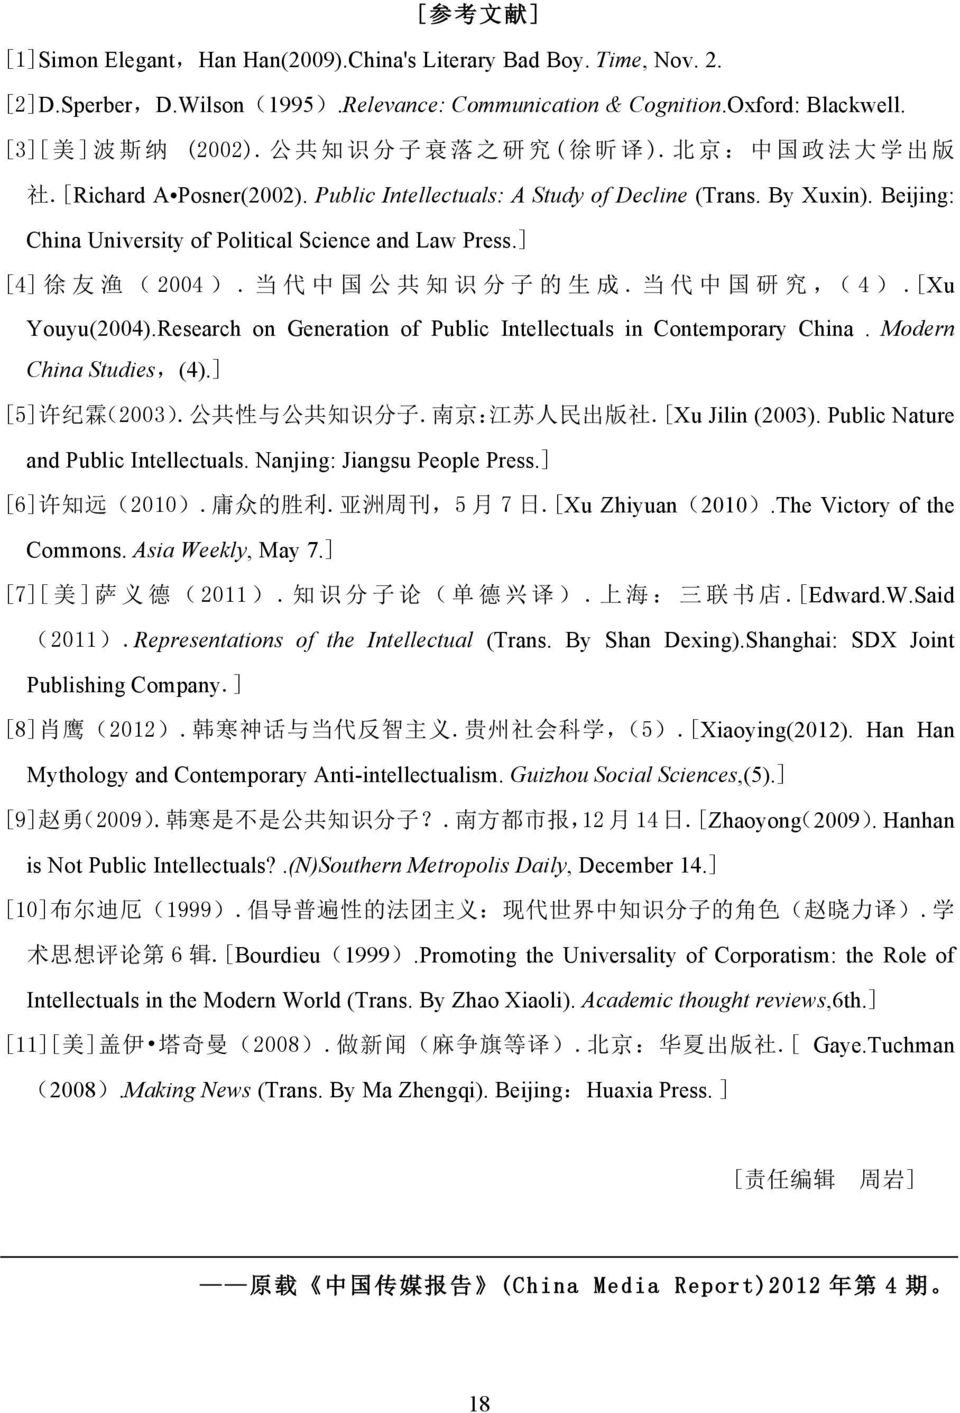 Beijing: China University of Political Science and Law Press.] [4] 徐 友 渔 (2004 ). 当 代 中 国 公 共 知 识 分 子 的 生 成. 当 代 中 国 研 究,(4 ).[Xu Youyu(2004).